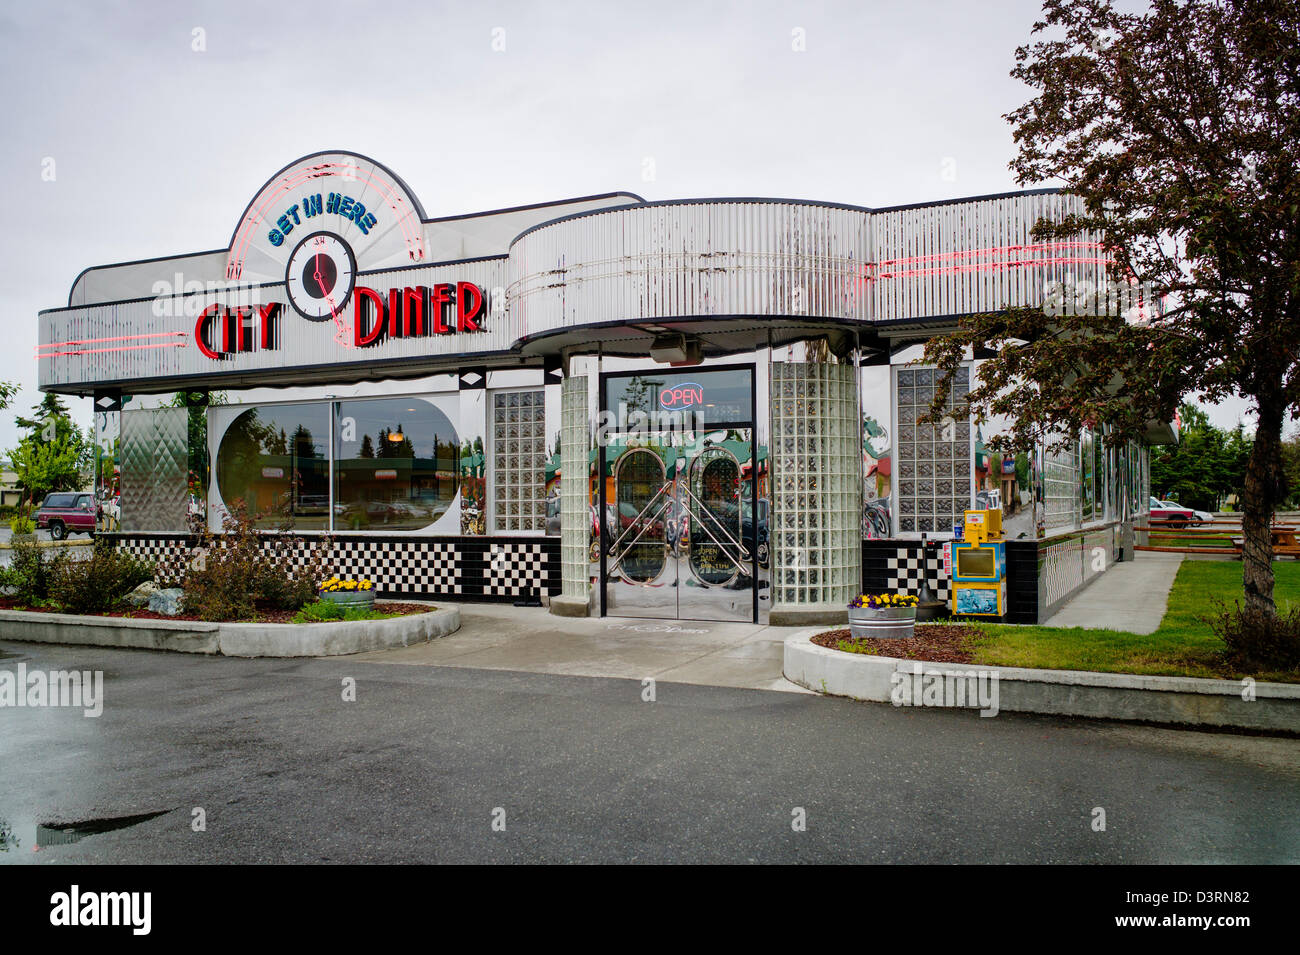 Exterior view of retro design stainless steel City Diner, Anchorage, Alaska, USA - Stock Image